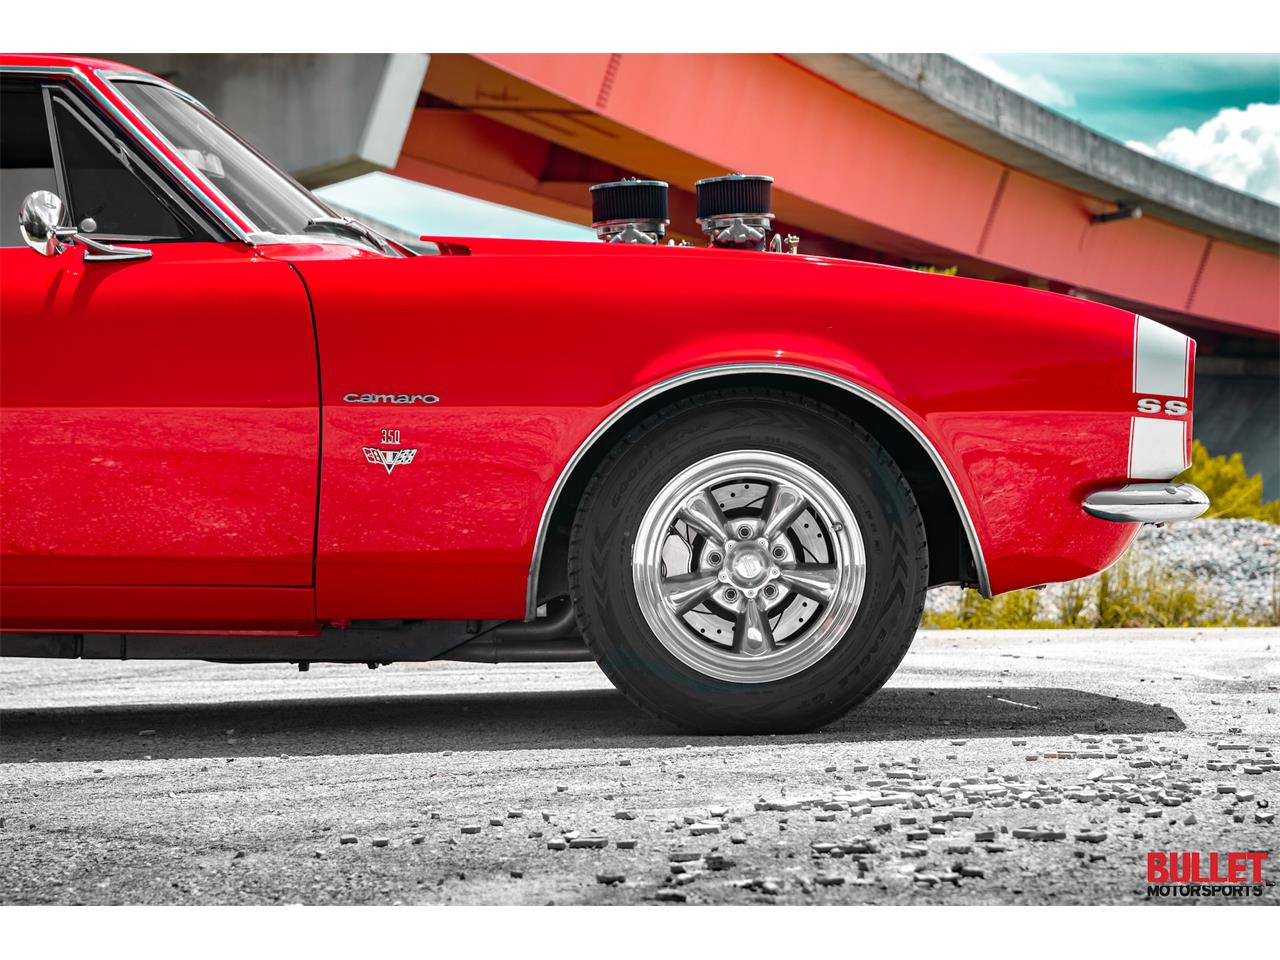 Large Picture of Classic 1967 Chevrolet Camaro located in Fort Lauderdale Florida - $49,950.00 - QIJZ